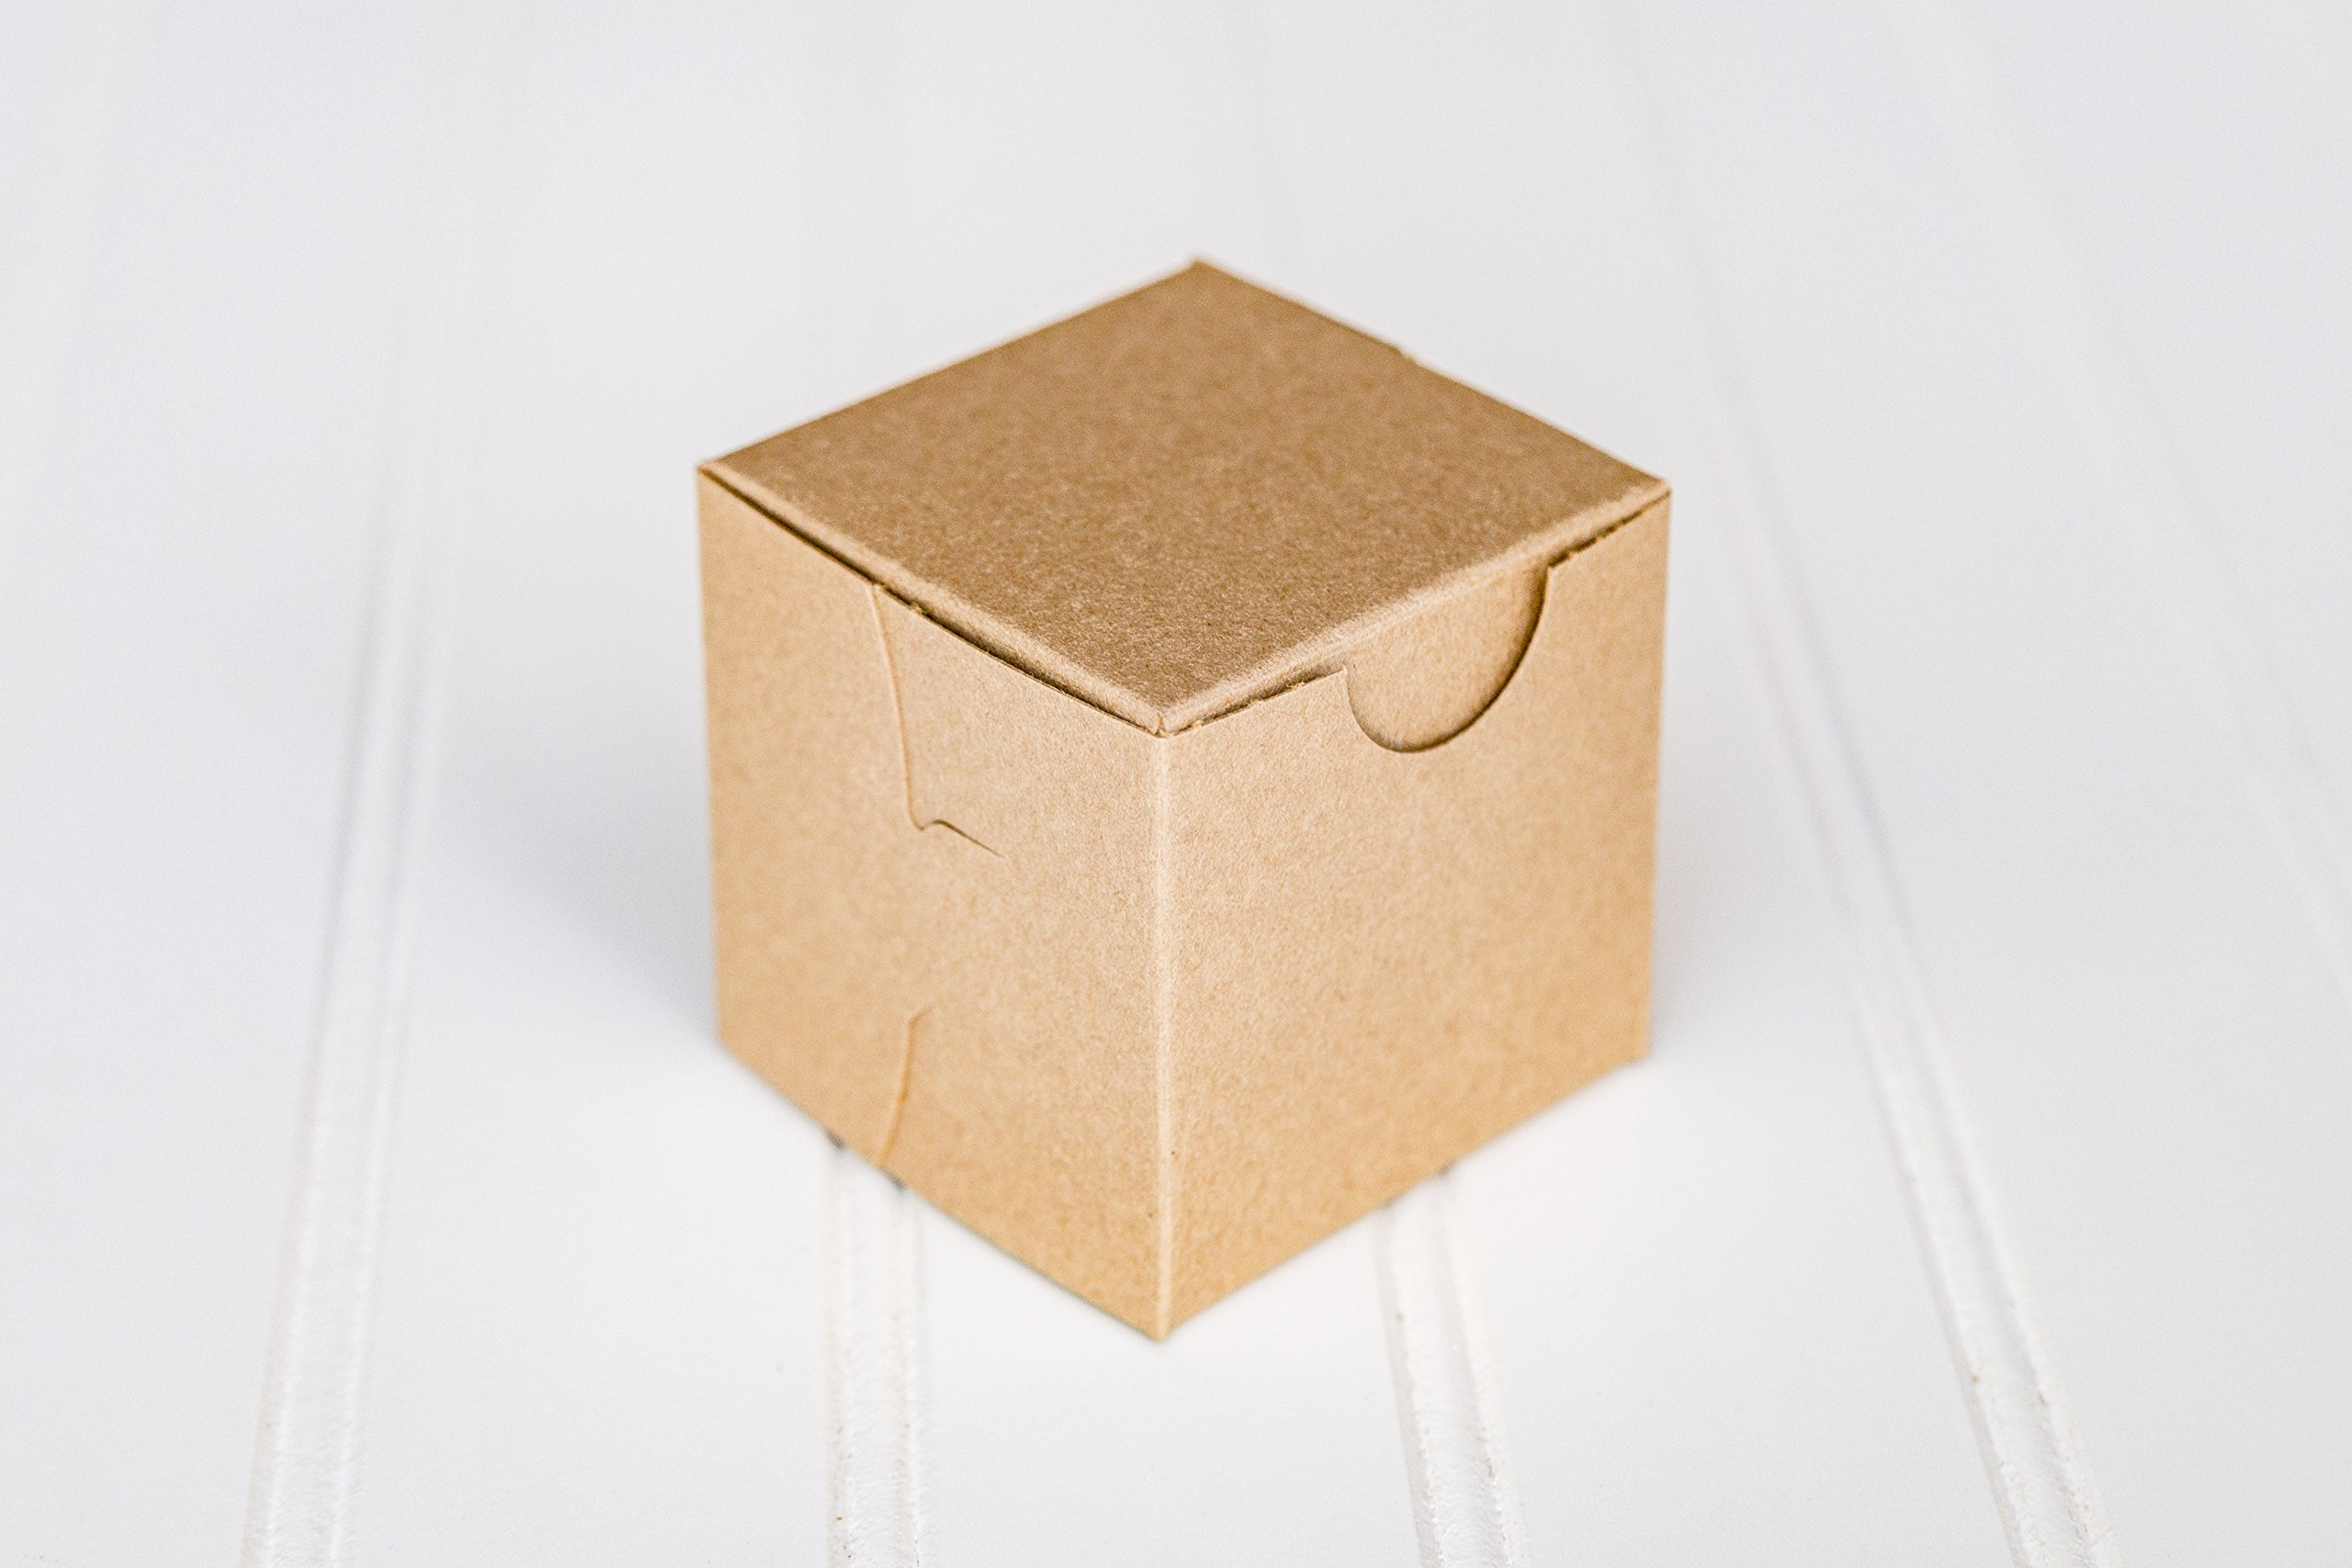 12 Kraft Brown Mini Cupcake Boxes Without Window 2.5 x 2.5 x 2.5 Inches